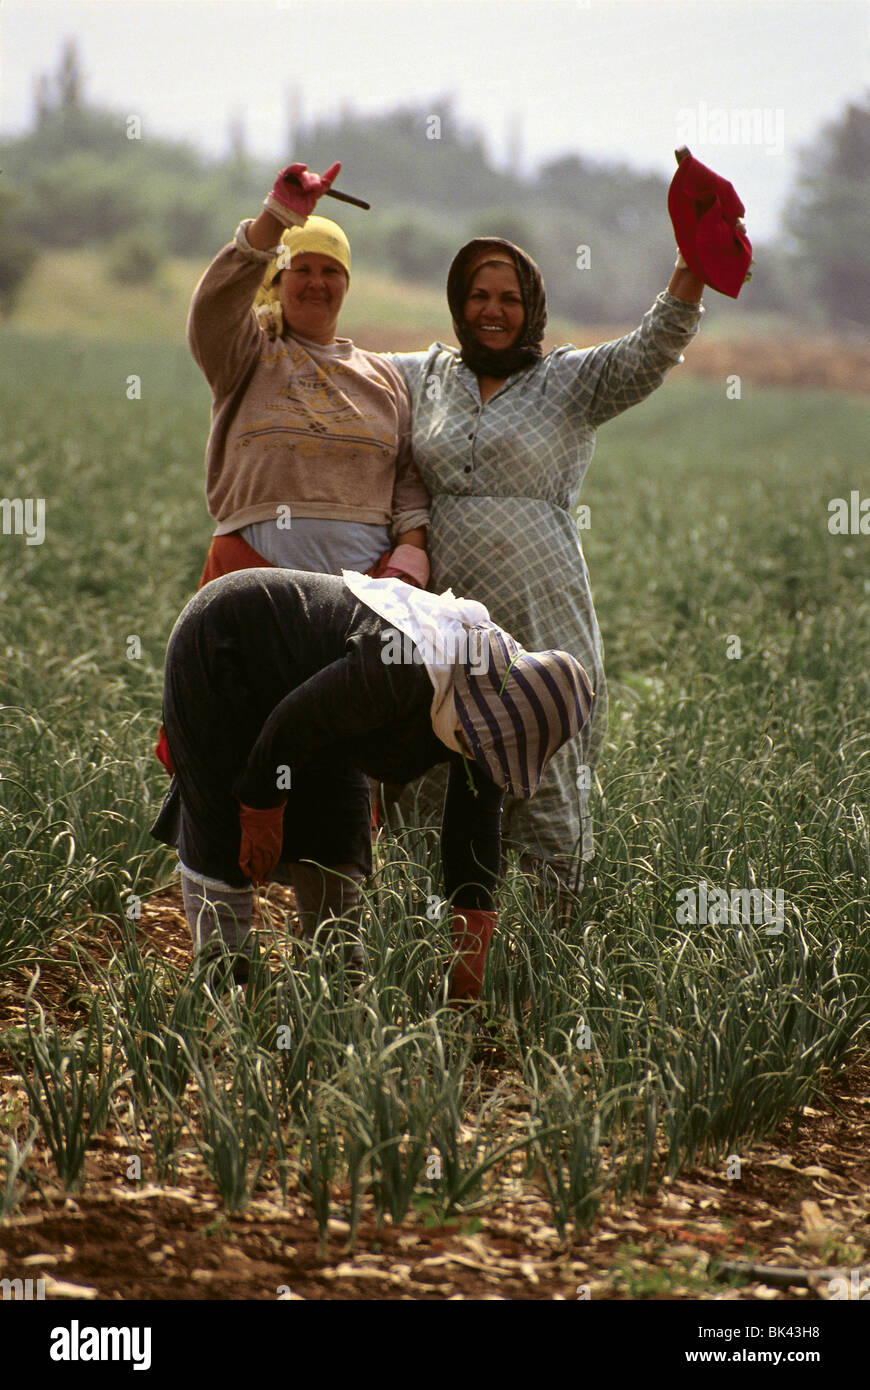 Workers in an onion field, Israel - Stock Image